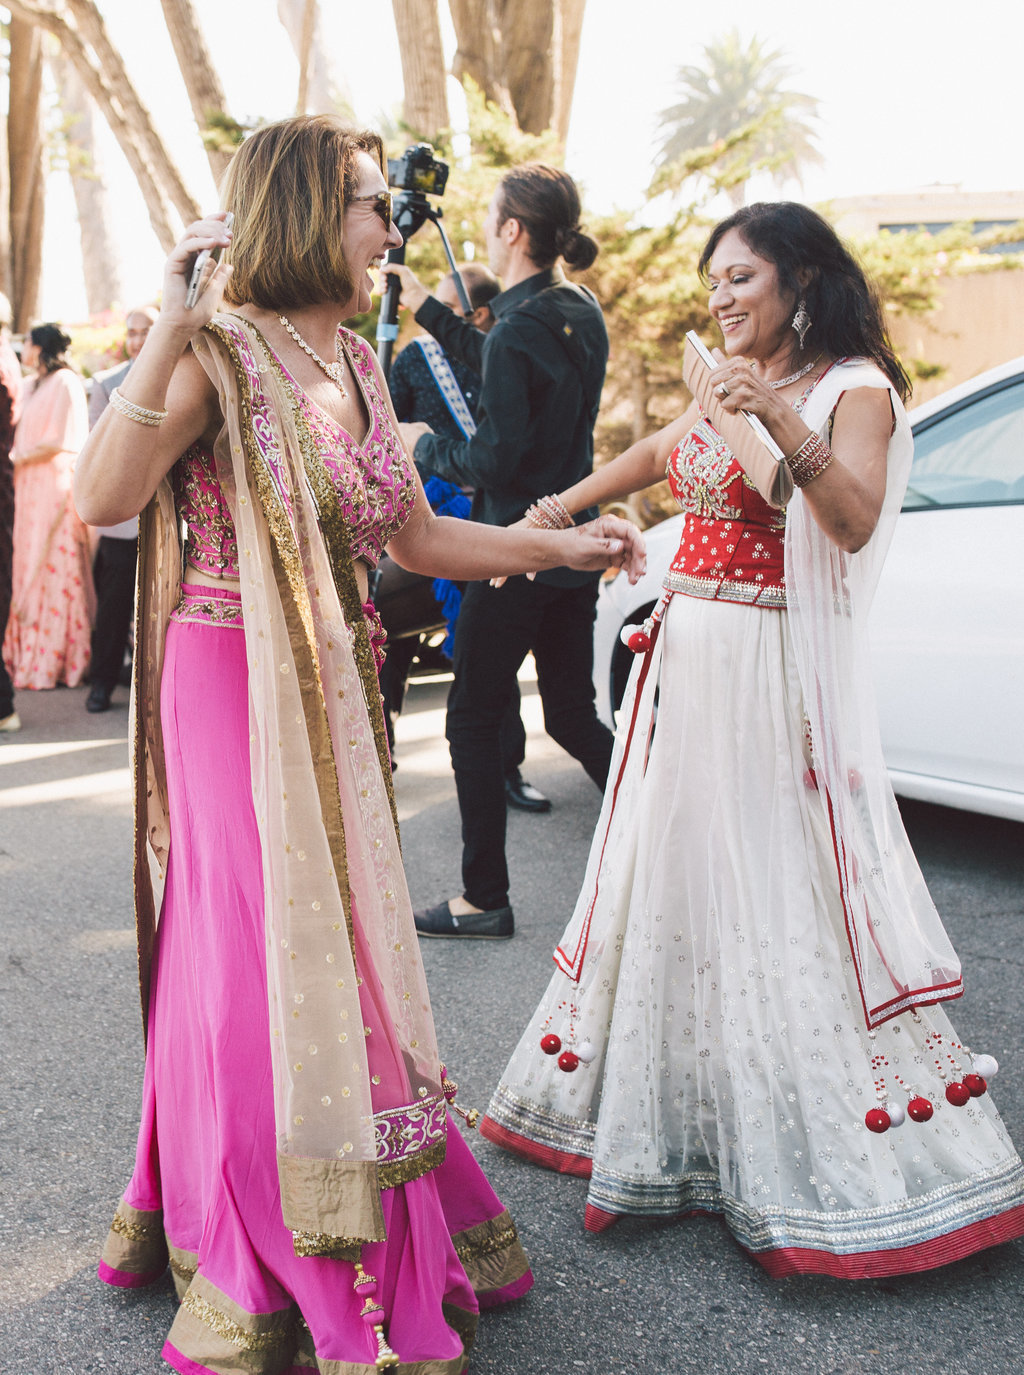 Bharat parade at Indian and Christian blended wedding ceremony at Butterfly Lane Estate in Montecito